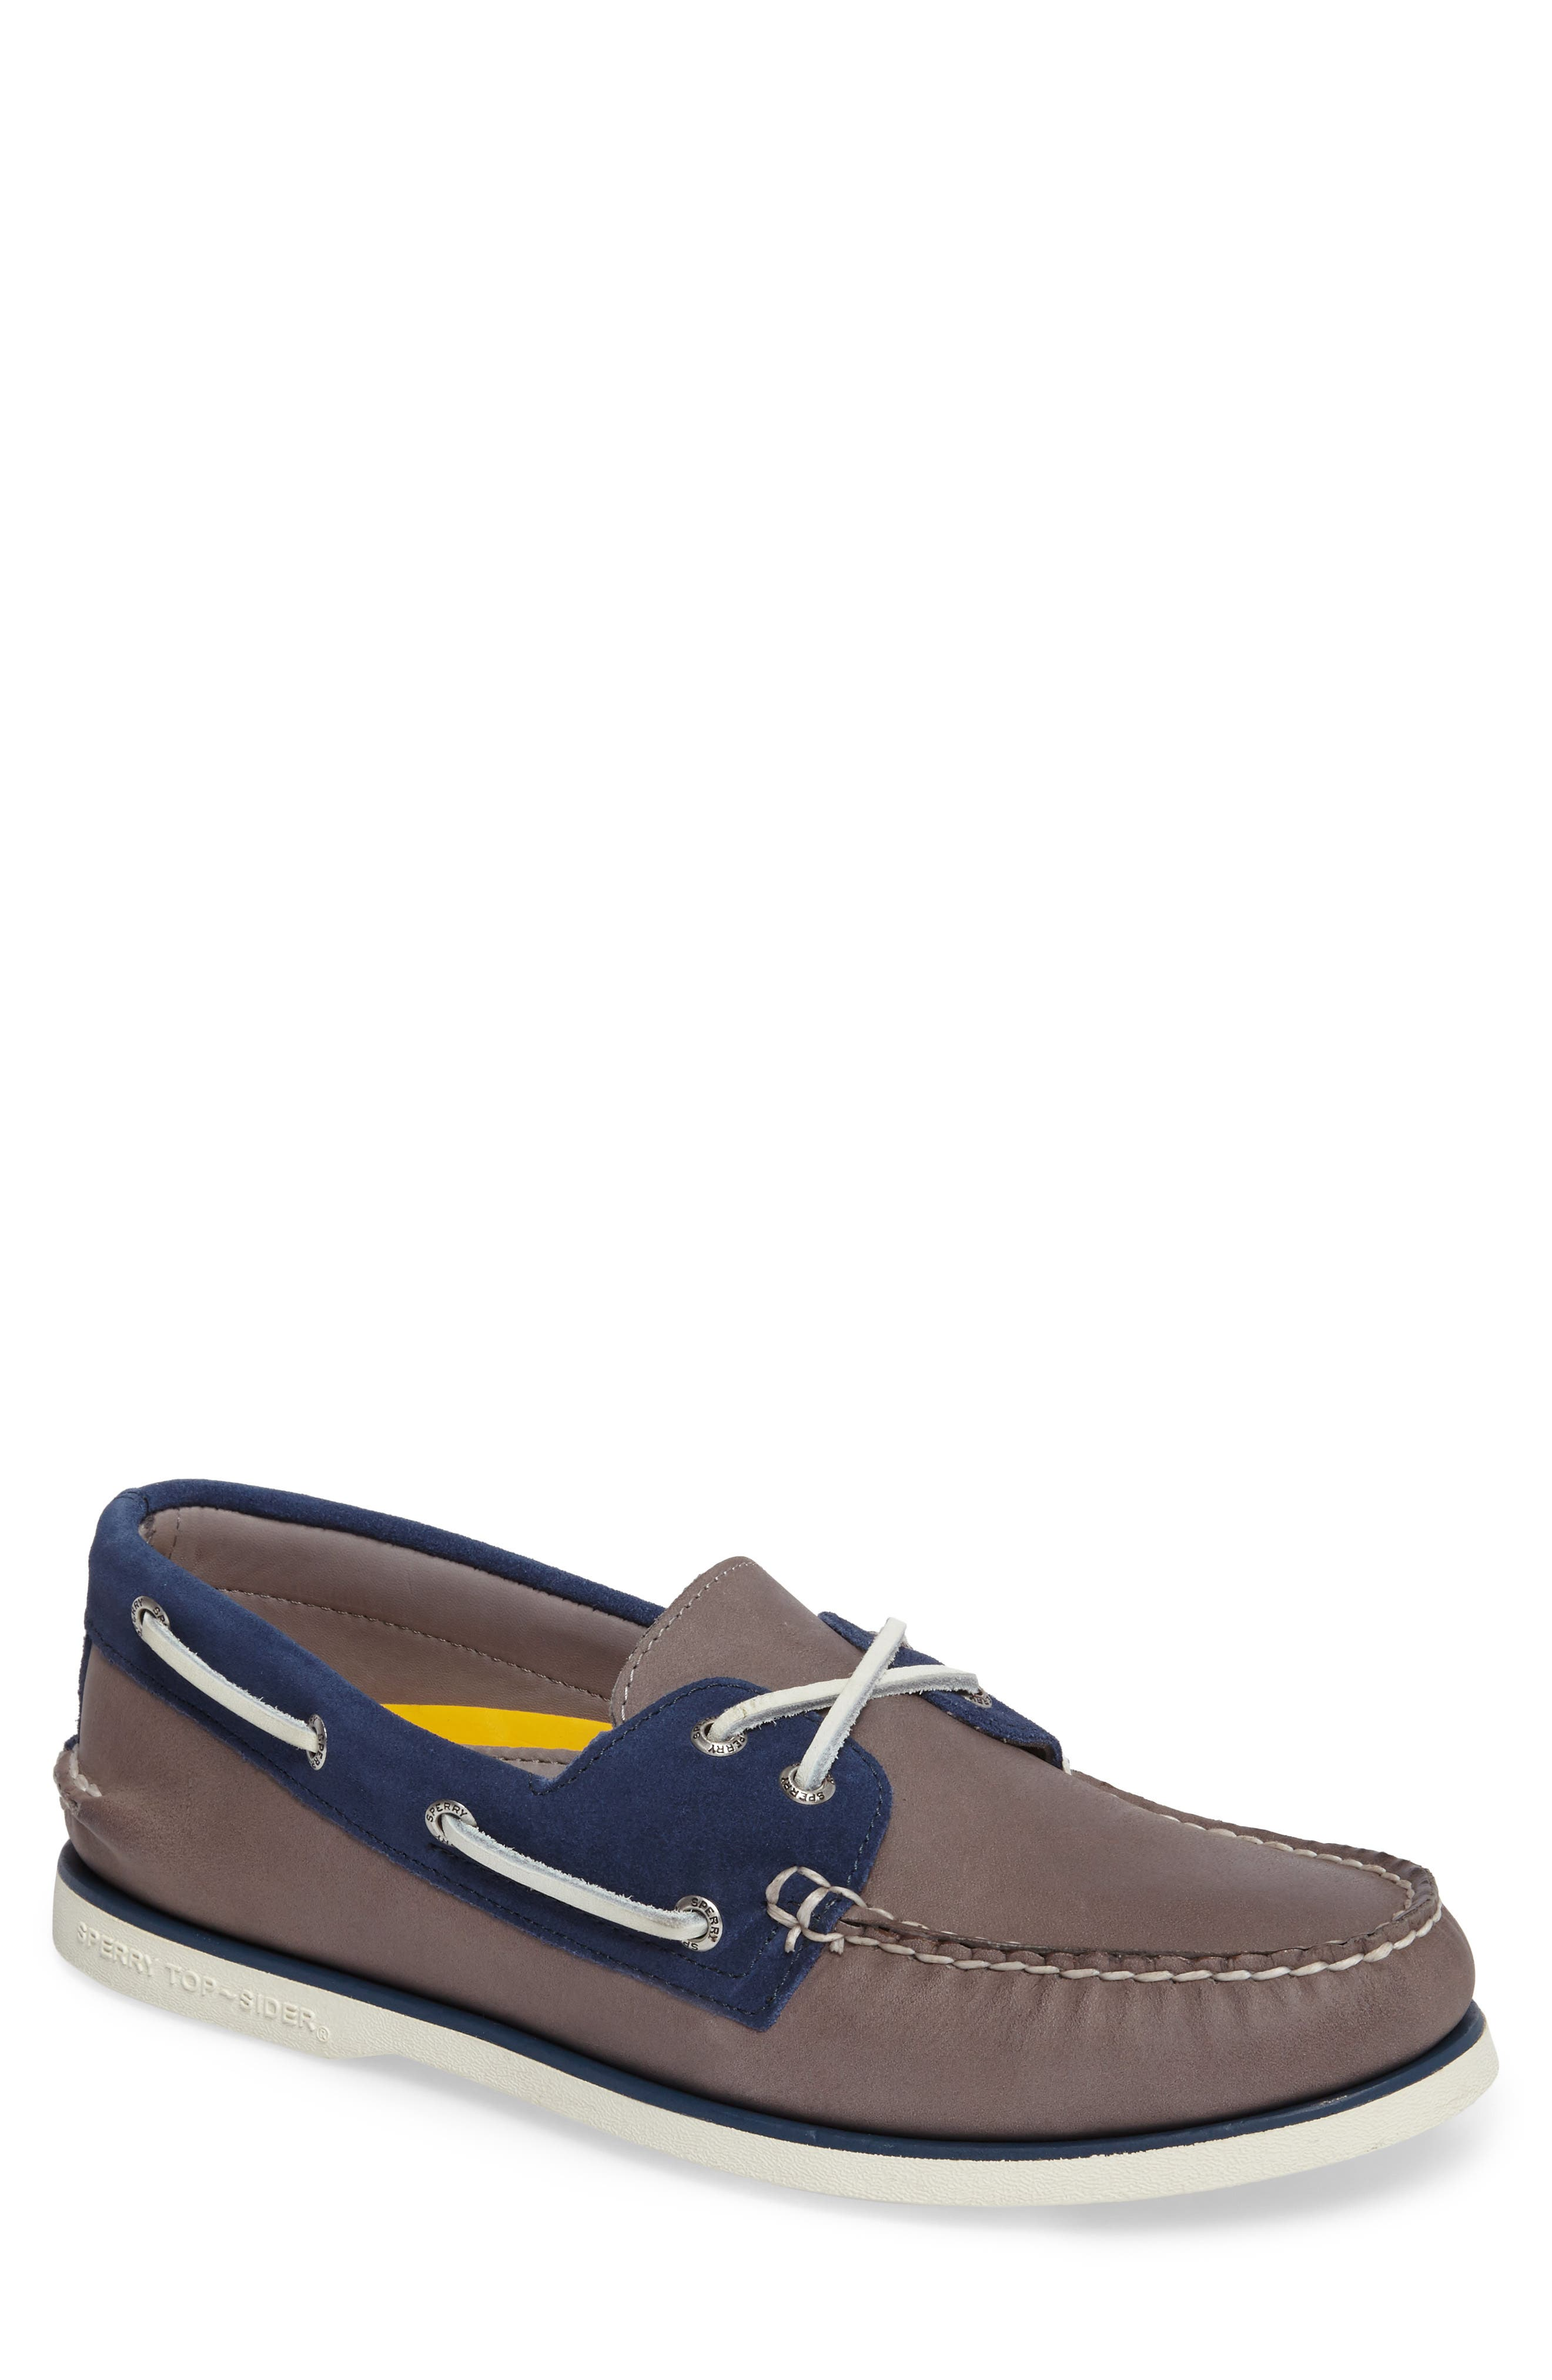 Gold Cup Authentic Original Boat Shoe,                         Main,                         color, Grey/ Blue Leather